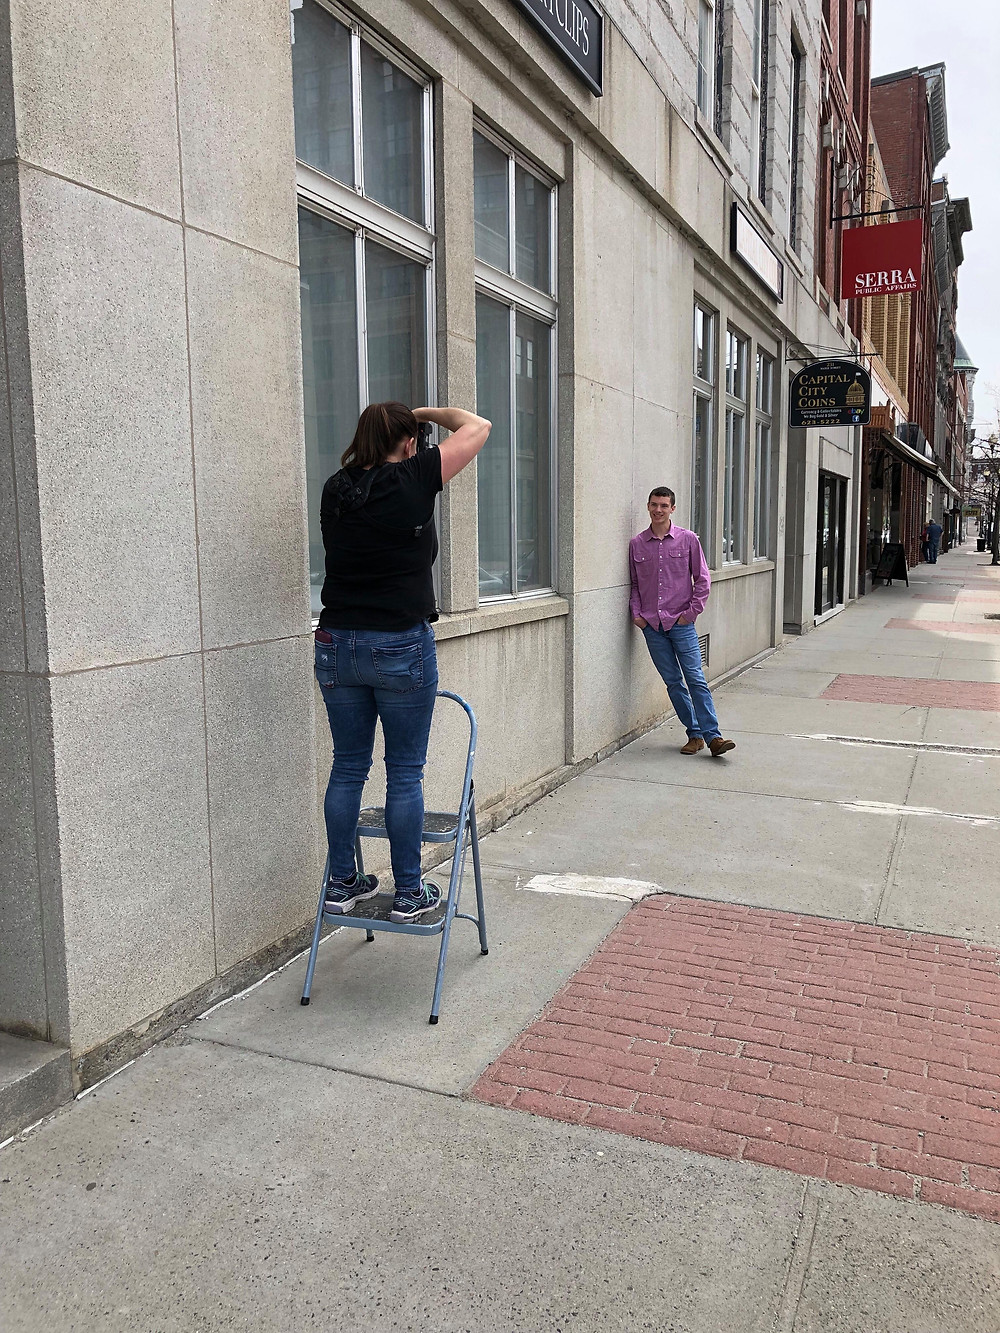 Julie Frances Photography on step ladder | Senior photo | Boy | City | Urban